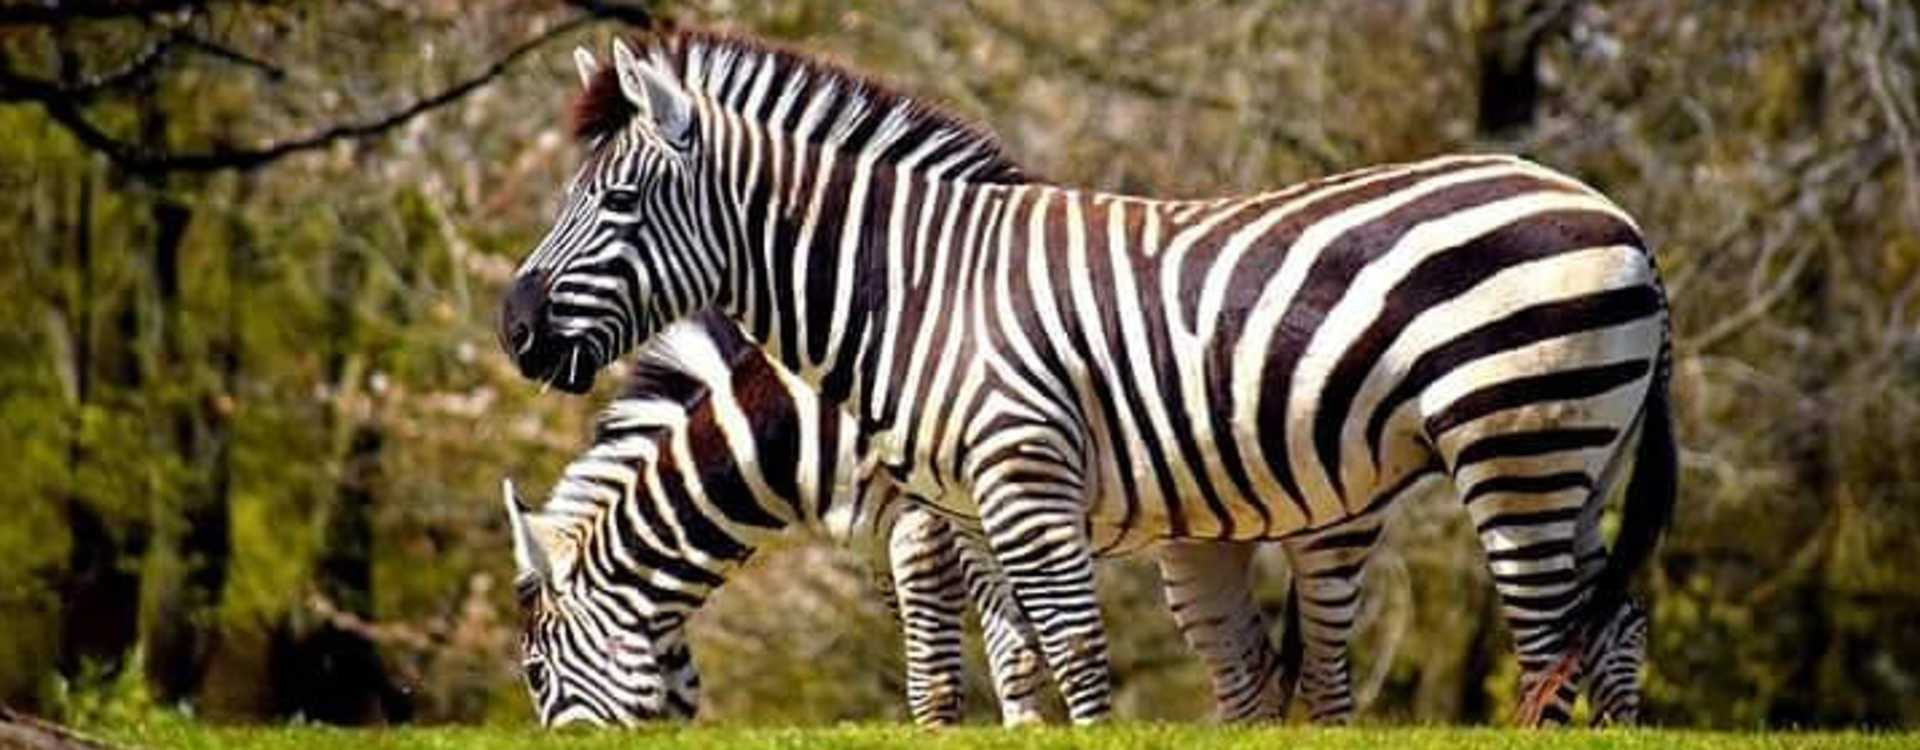 Zebras at Woodland Park Zoo in Seattle